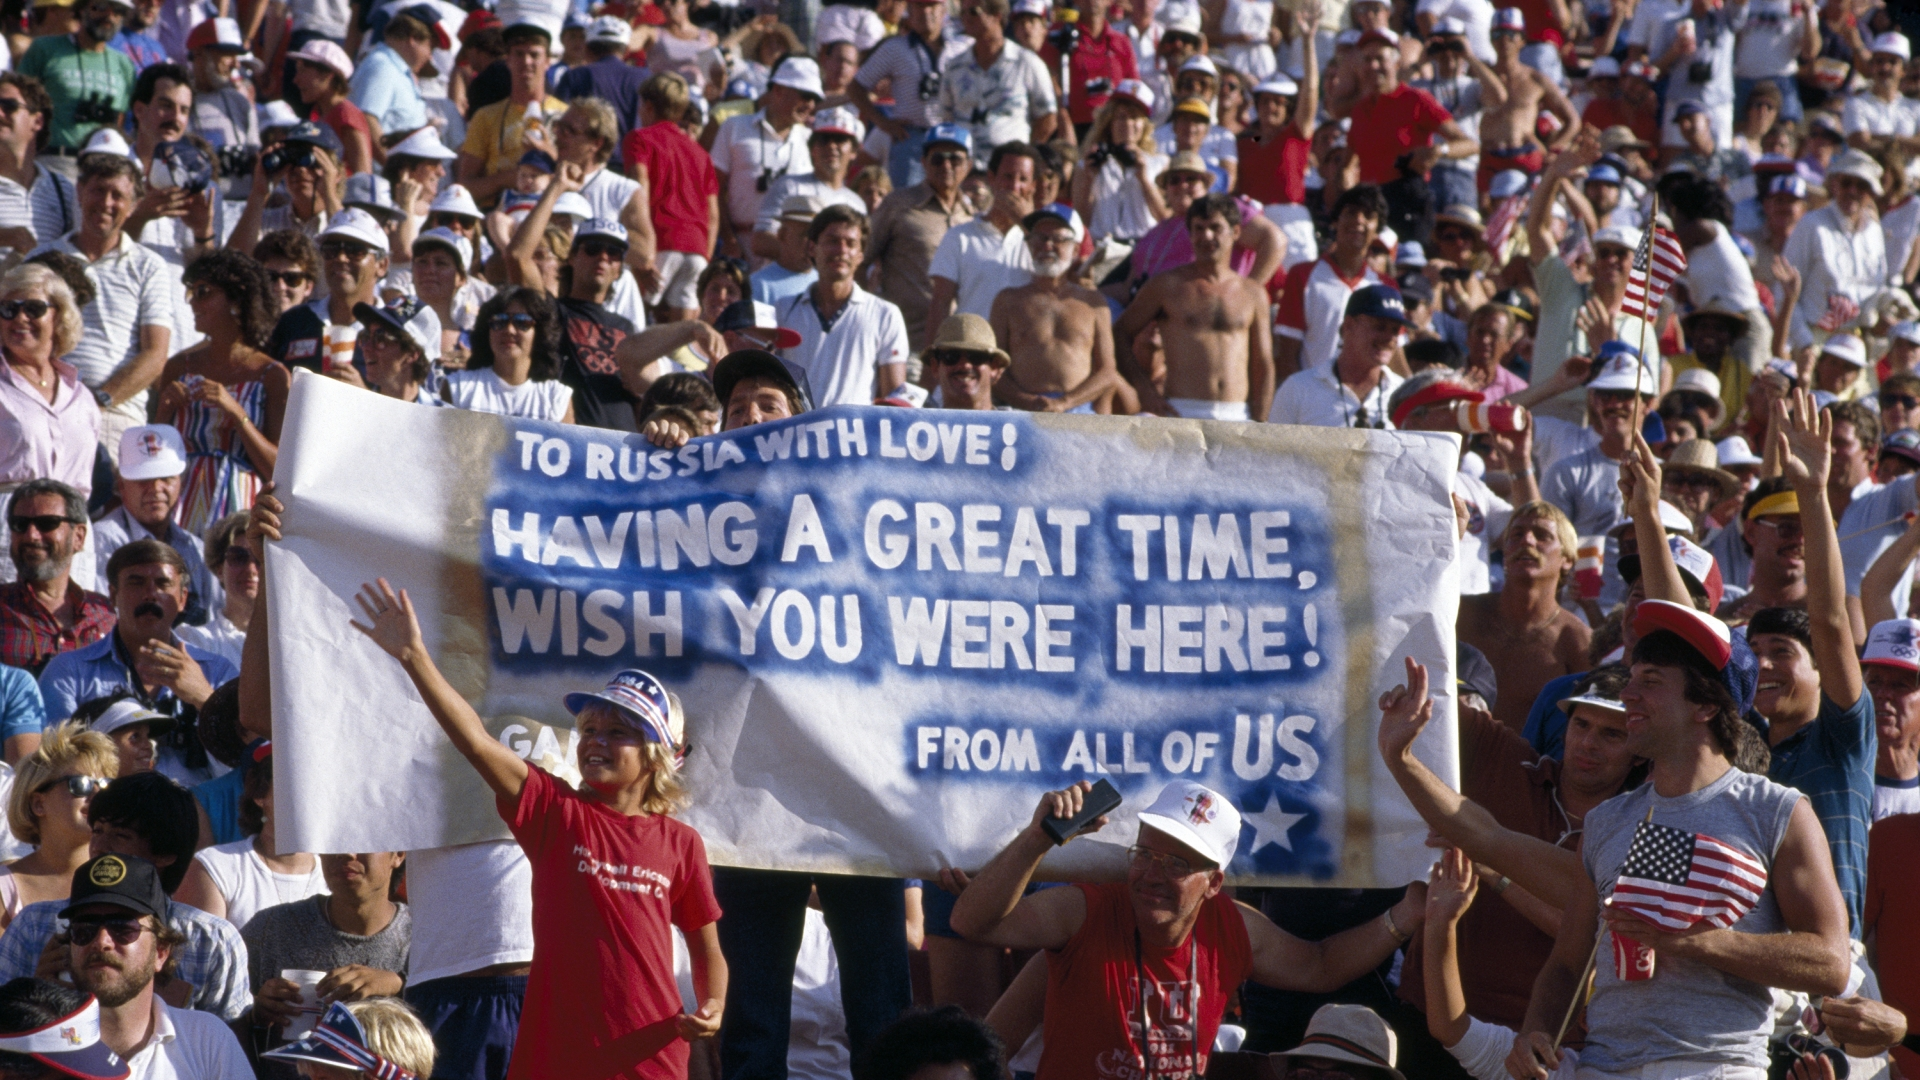 American athletics fans displaying a banner with the message 'To Russia With Love! Having a Great Time, Wish You Were Here', in reference to the boycott of the Games by the Soviet Union. (Credit: Bob Thomas/Getty Images)